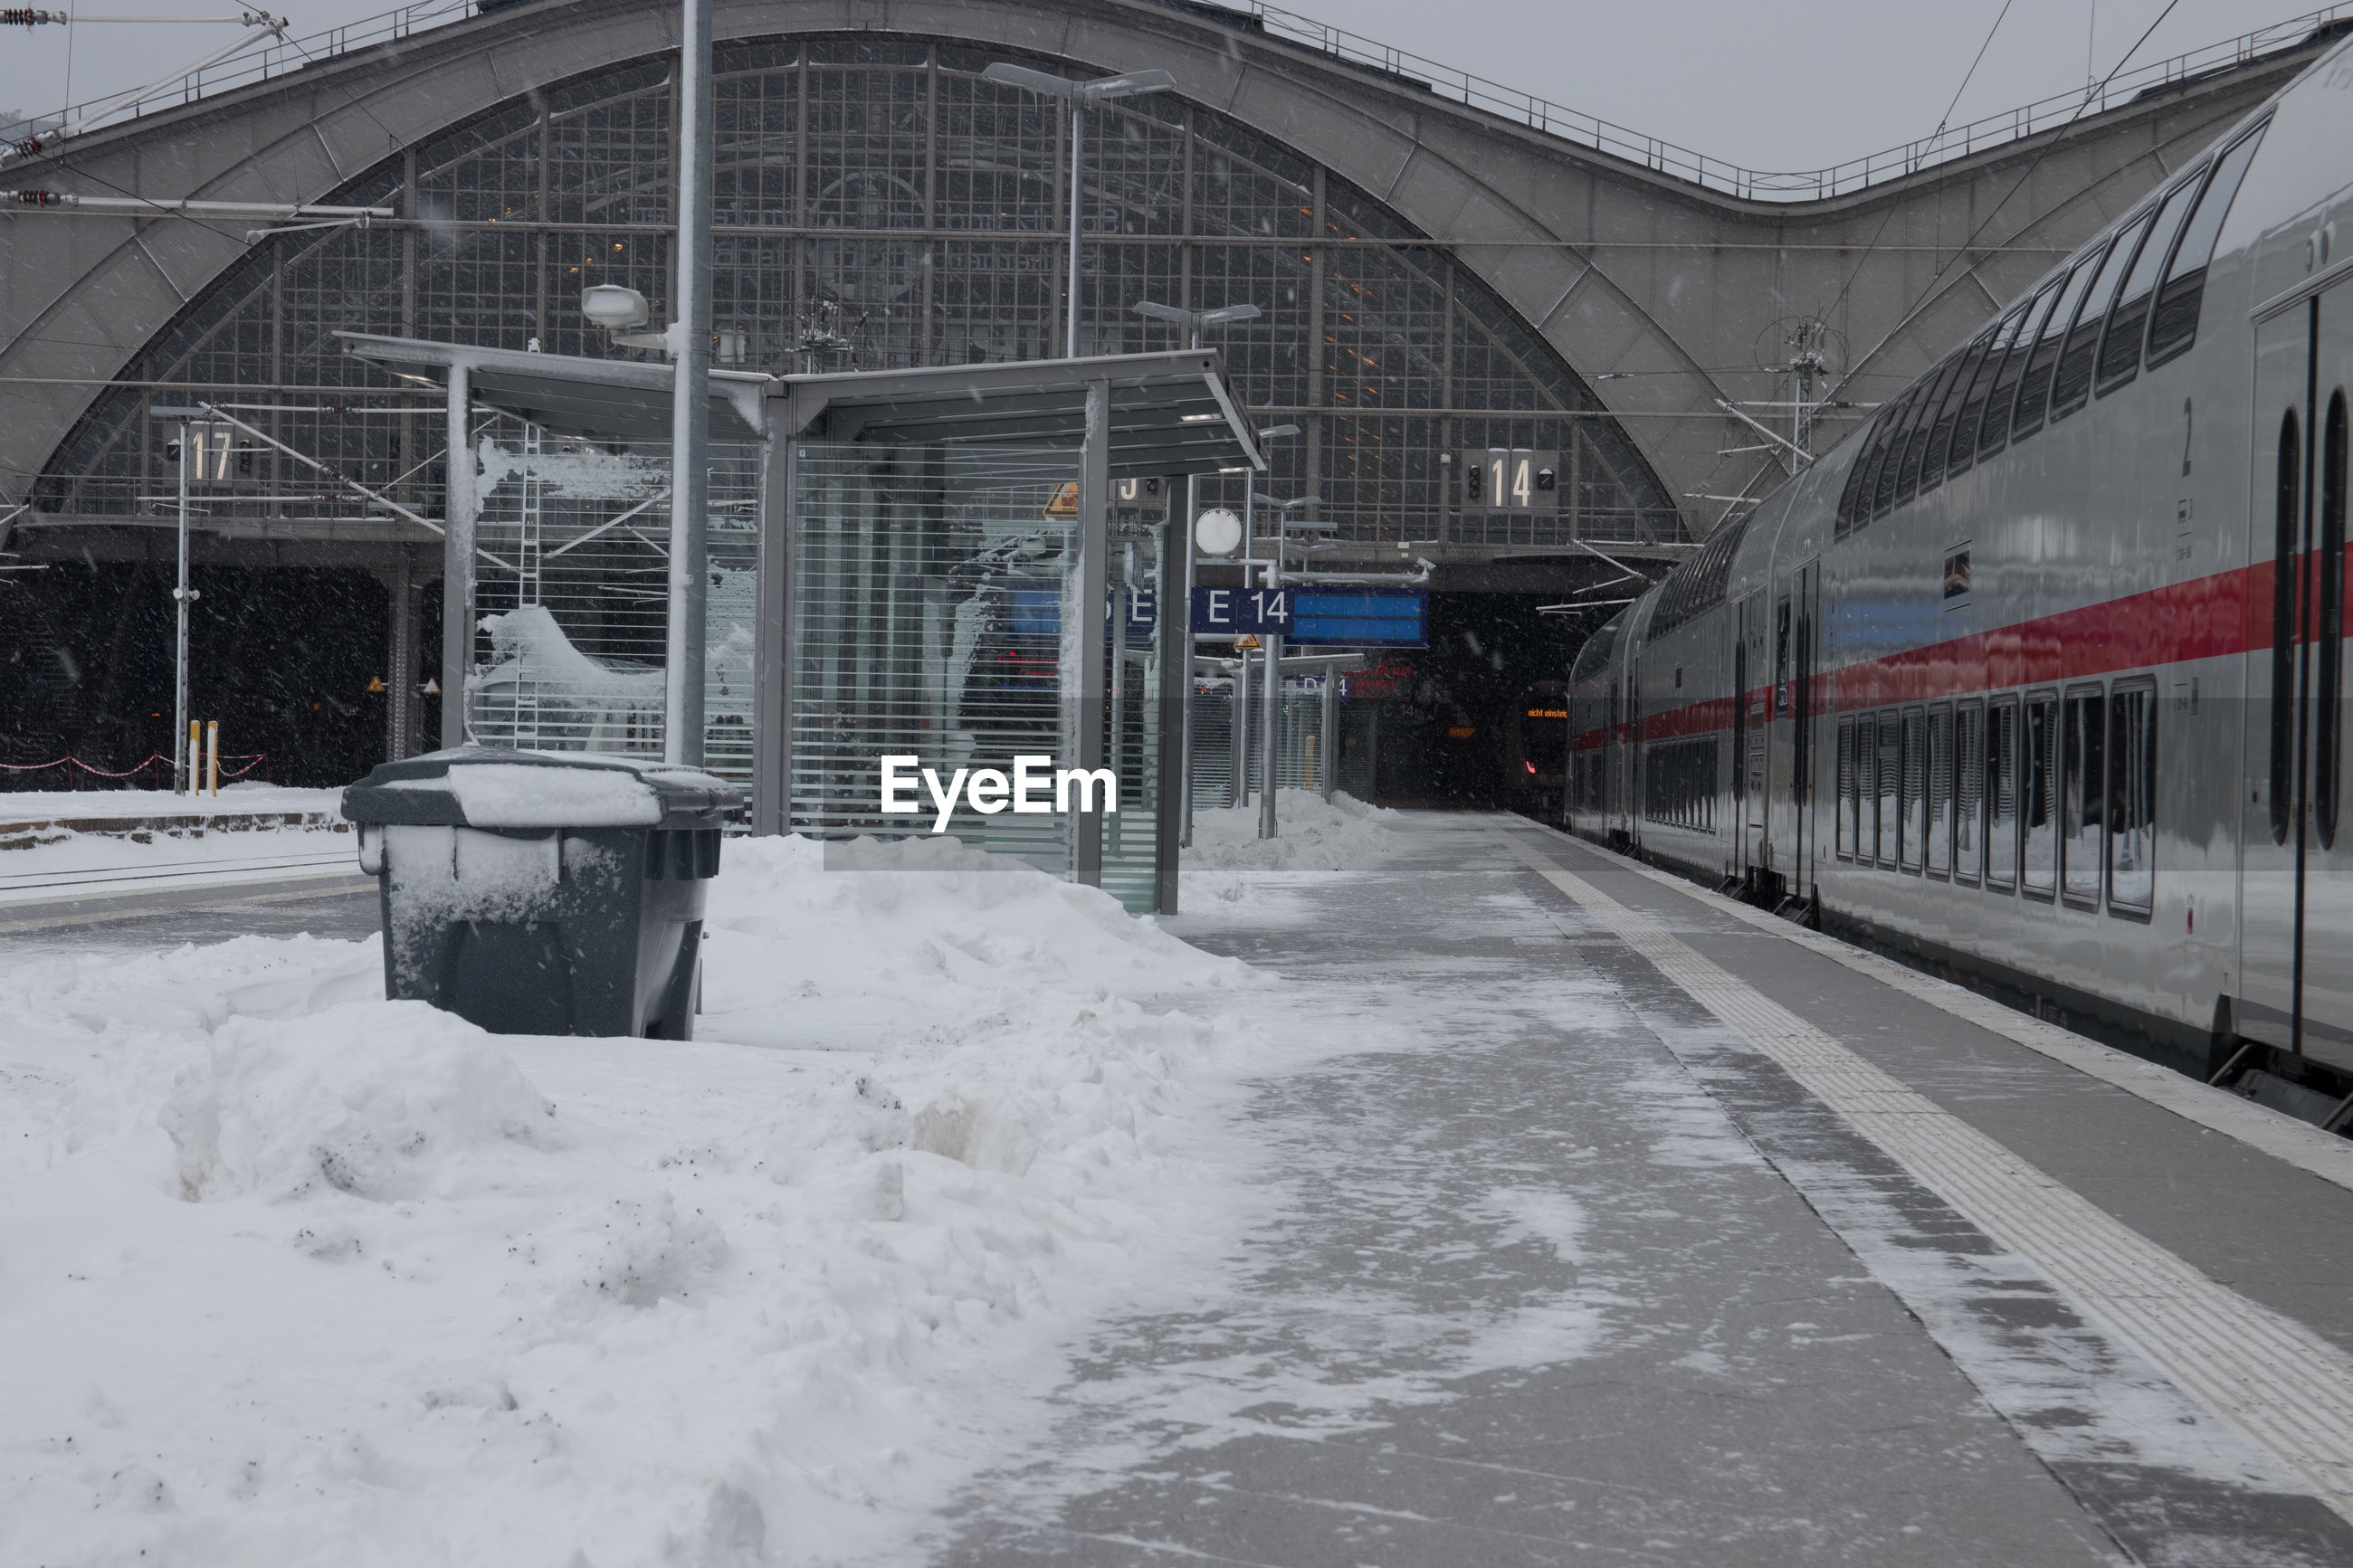 SNOW COVERED RAILROAD TRACKS AMIDST BUILDINGS